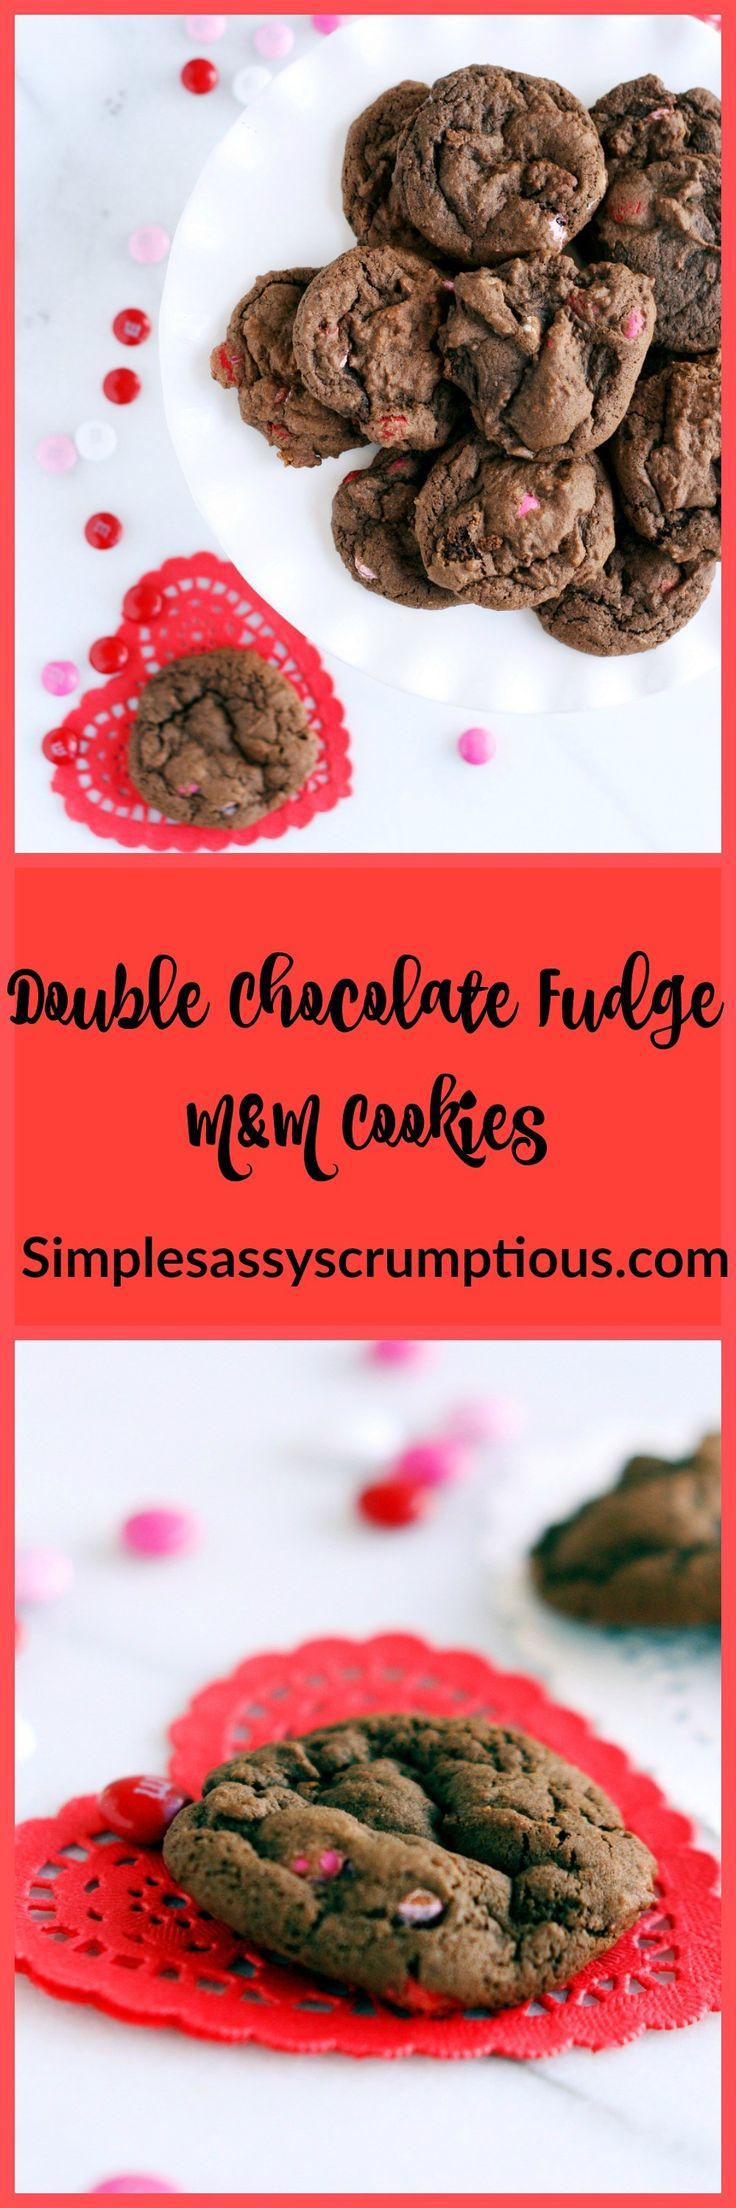 If there is one food item that I absolutely can not live without it is chocolate!  This recipe is definitely for CHOCOLATE LOVERS!!!  It's Valentine's Day is this week and the stores are flooded with an obscene amount of candy.  I found these cute Valentine's Day colored M&M's and knew I had to bake something …